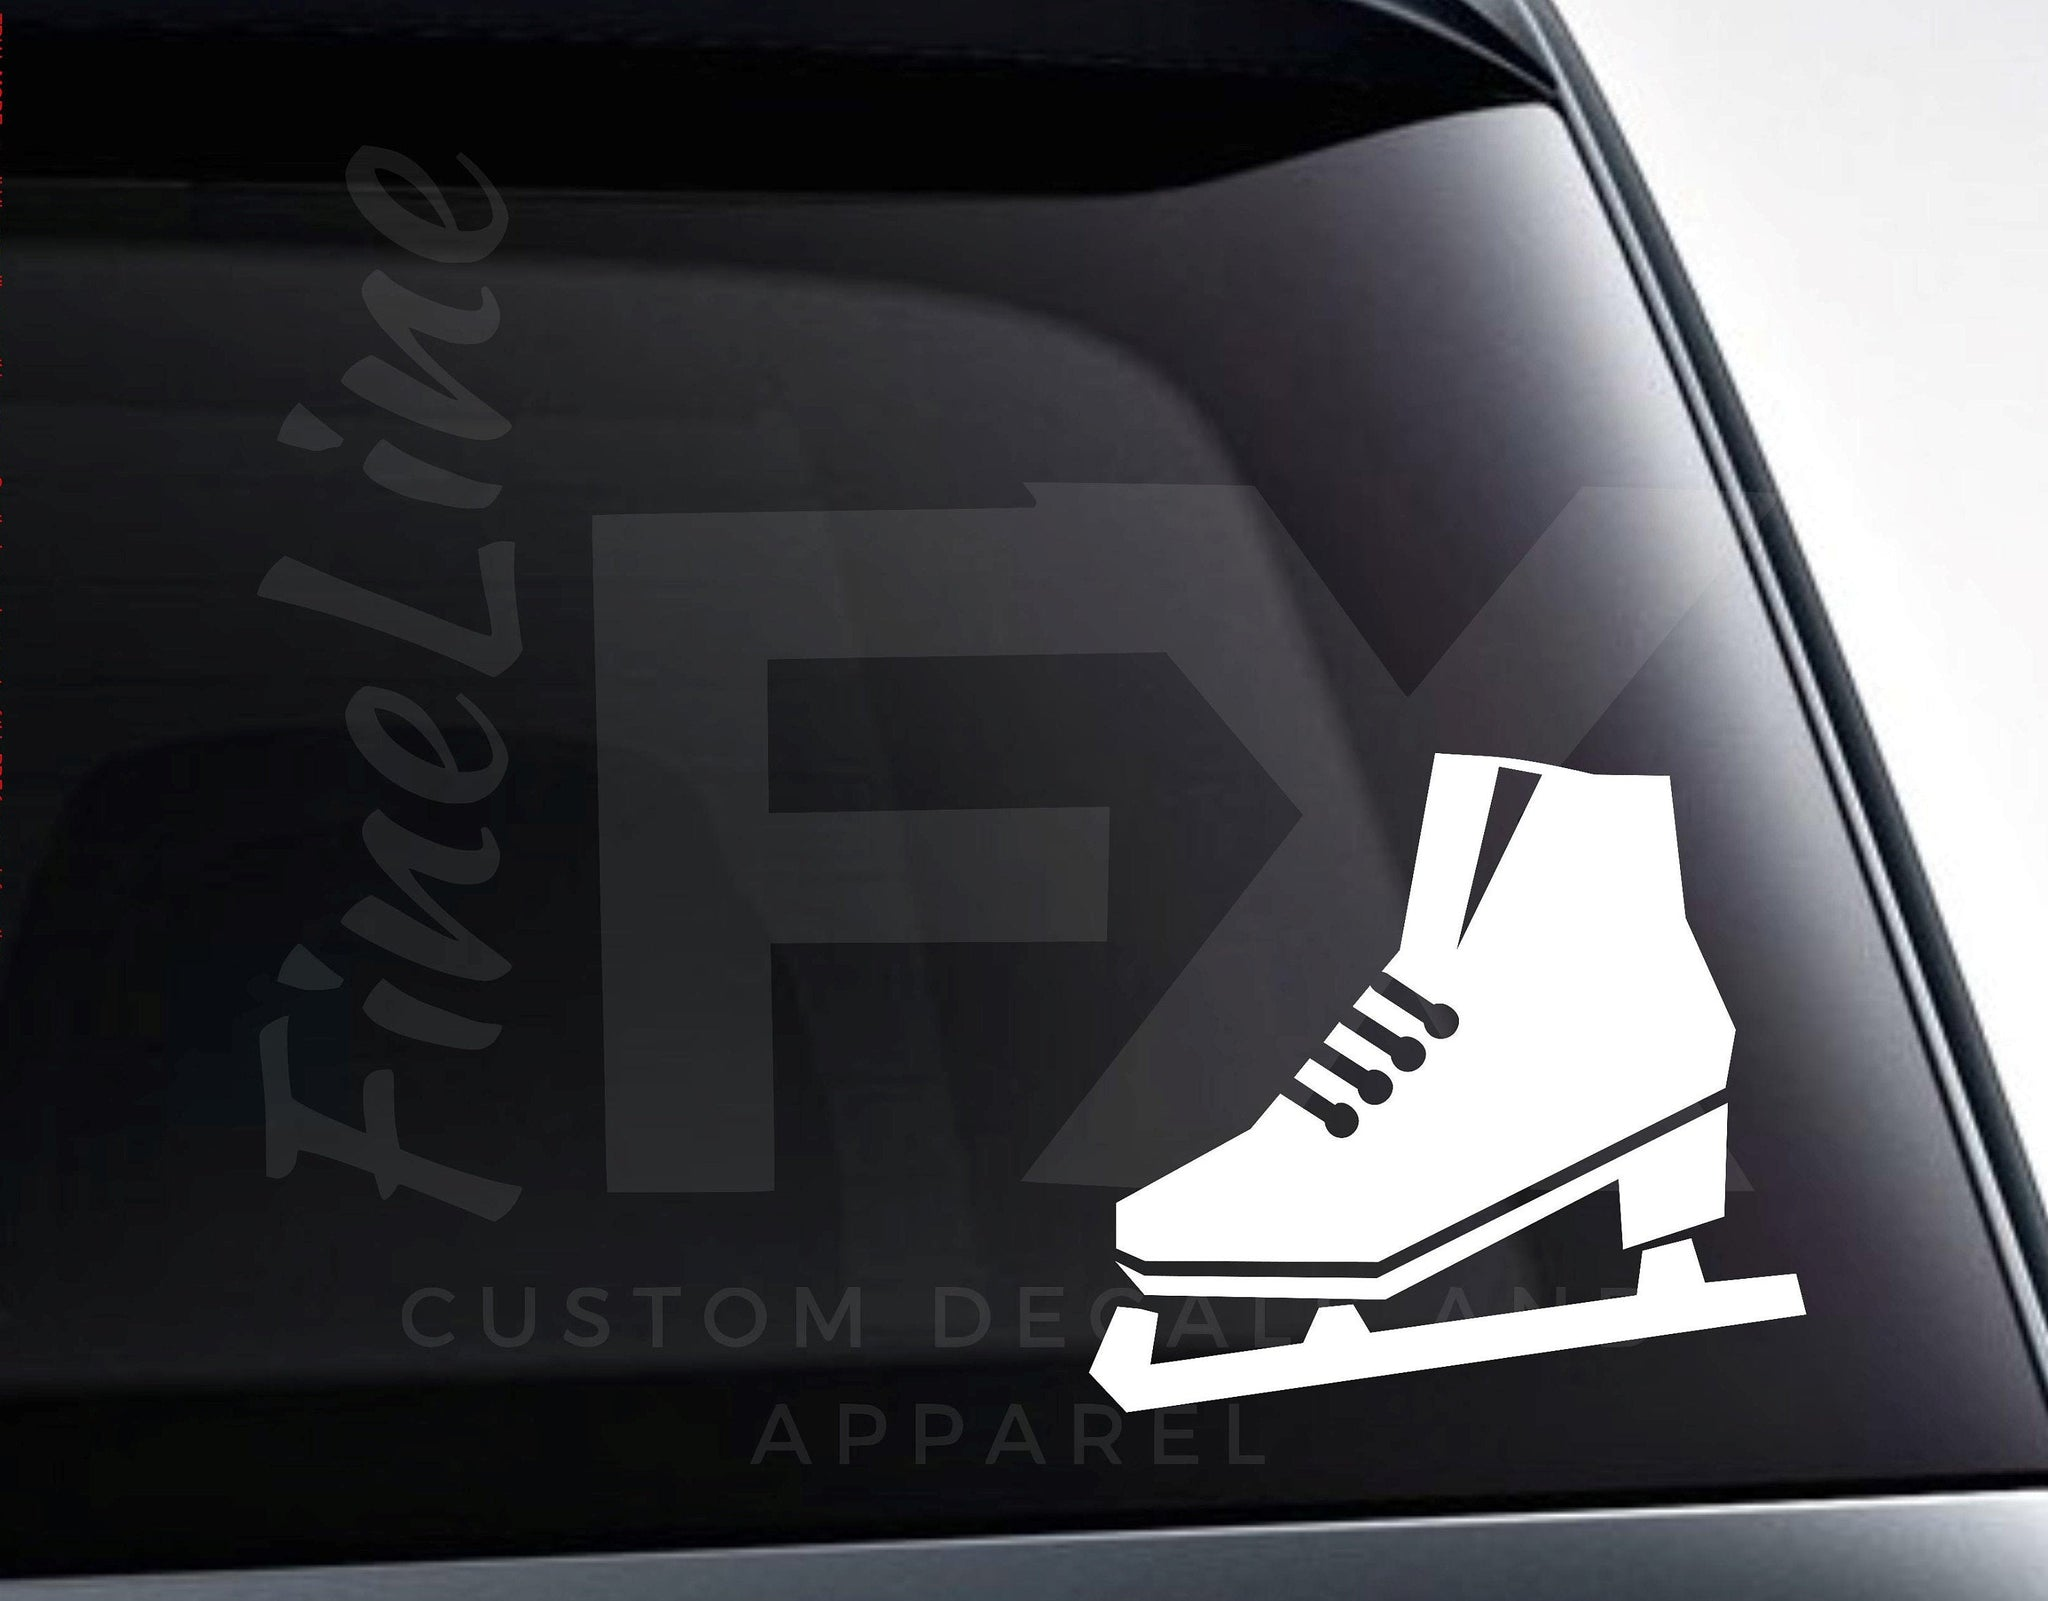 Ice Skate Decal, Ice Skating Vinyl Decal Sticker | Decal For Cars, Laptops, Tumblers And More